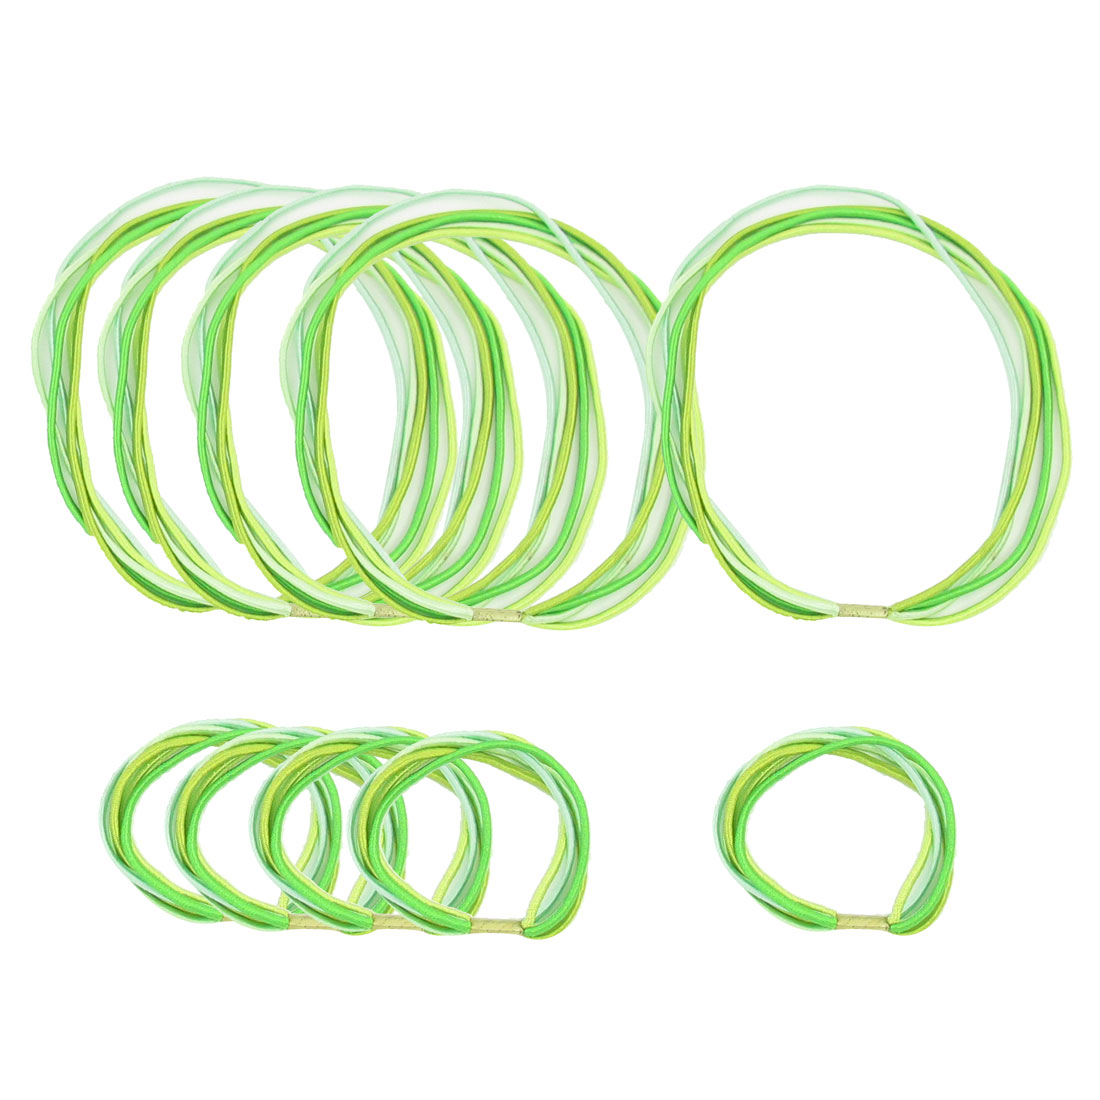 4 Pieces Green DIY Hairstyle Elastic Hair Ties Ponytail Holder